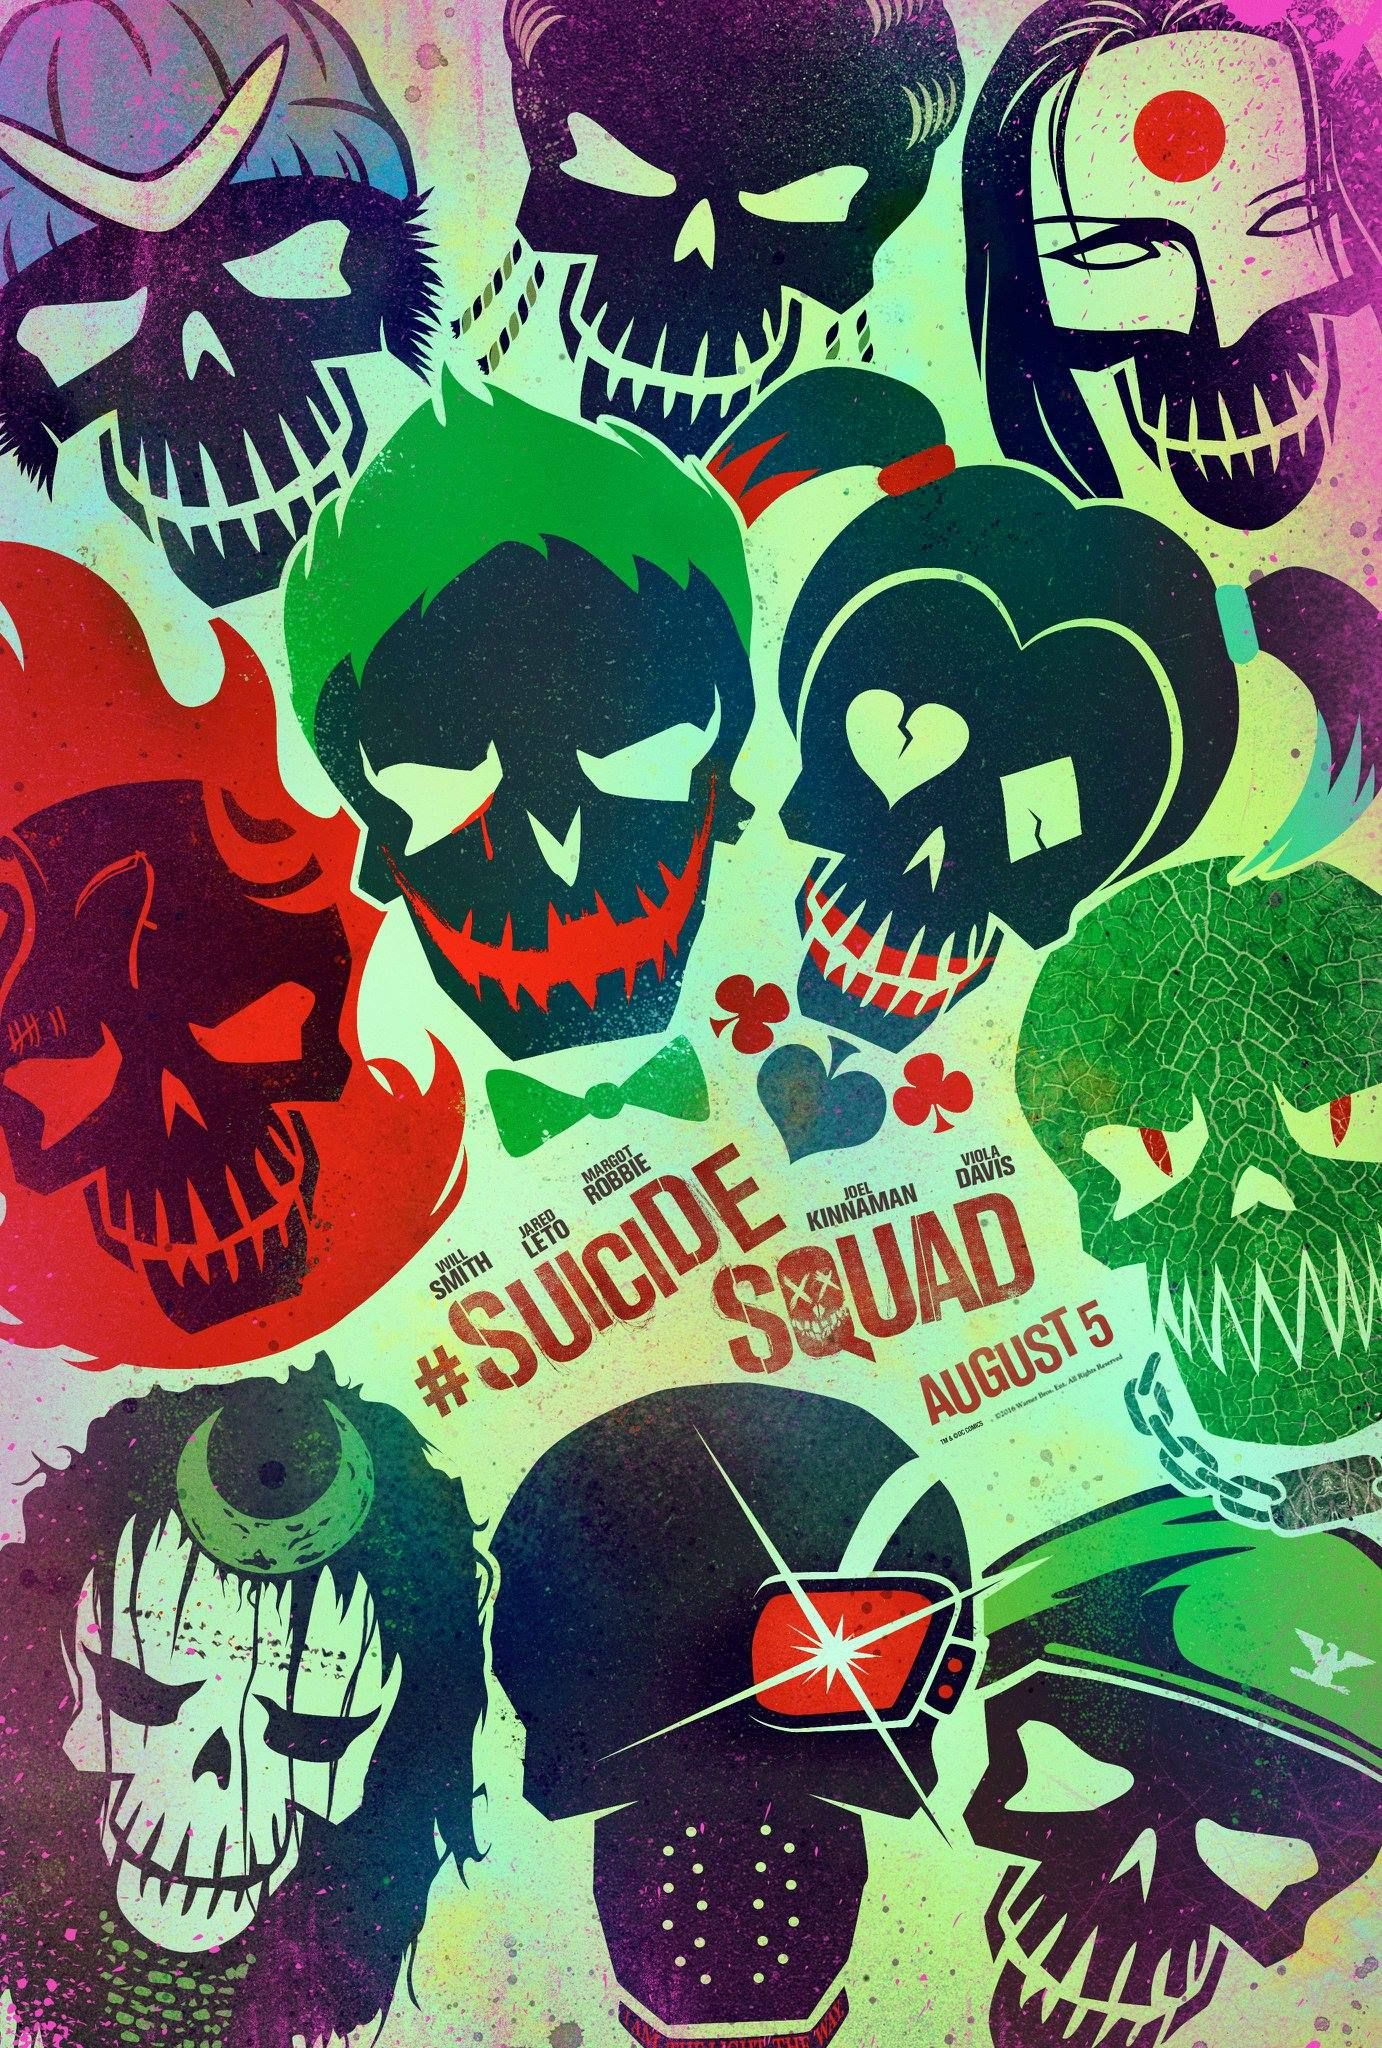 Suicide Squad Movie Posters Reveal Quot Worst Heroes Ever